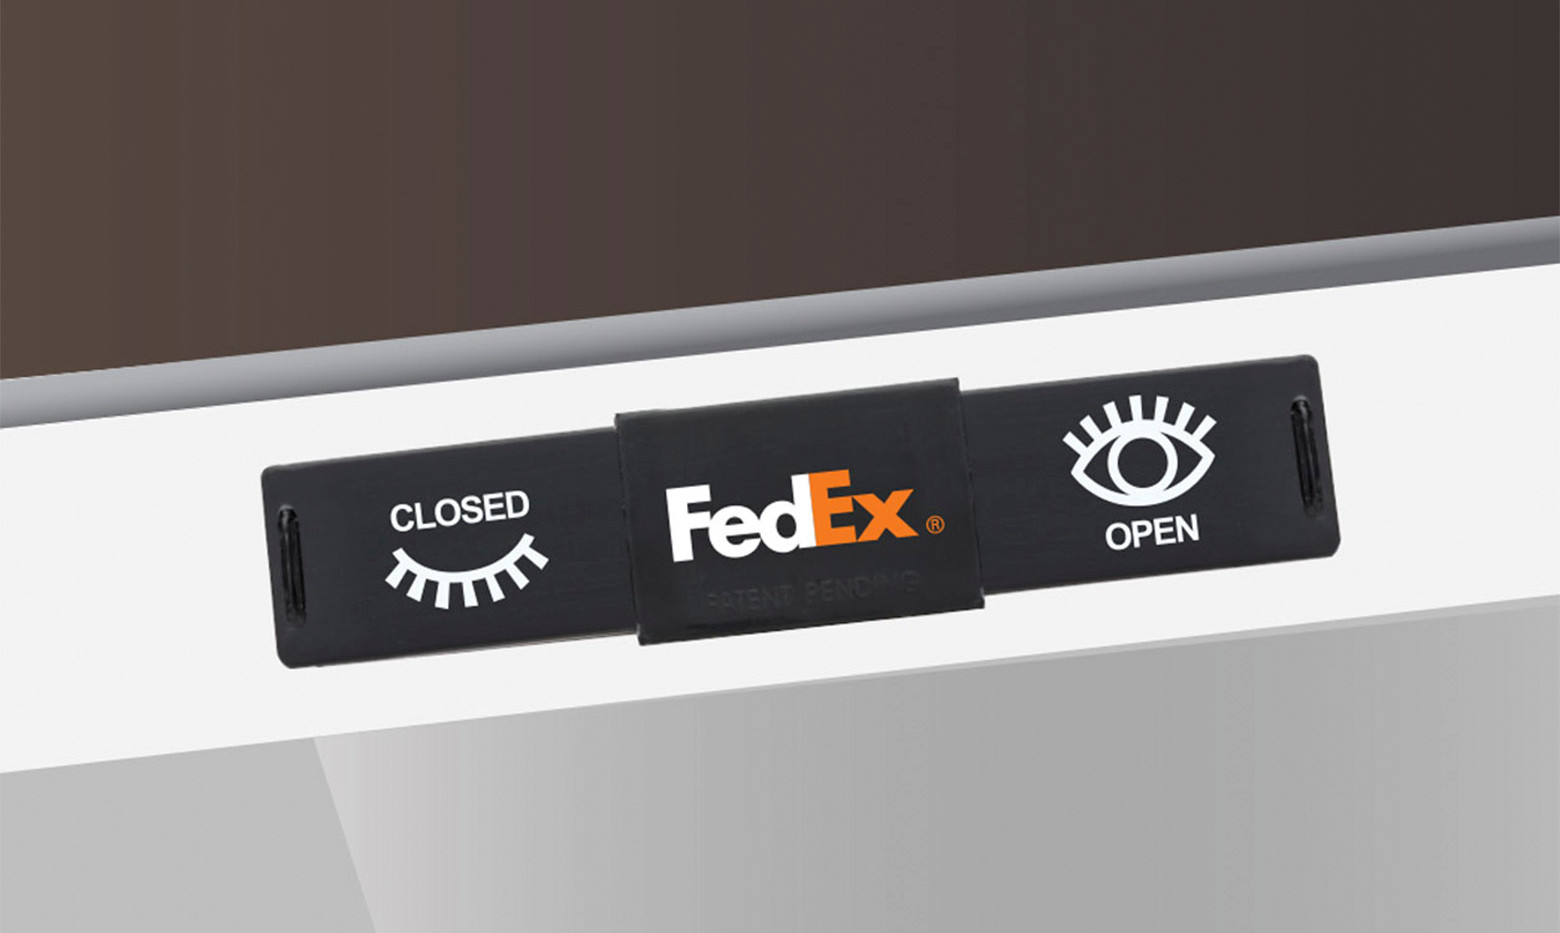 2.0-Fedex-vector-laptop-closed 2.jpg